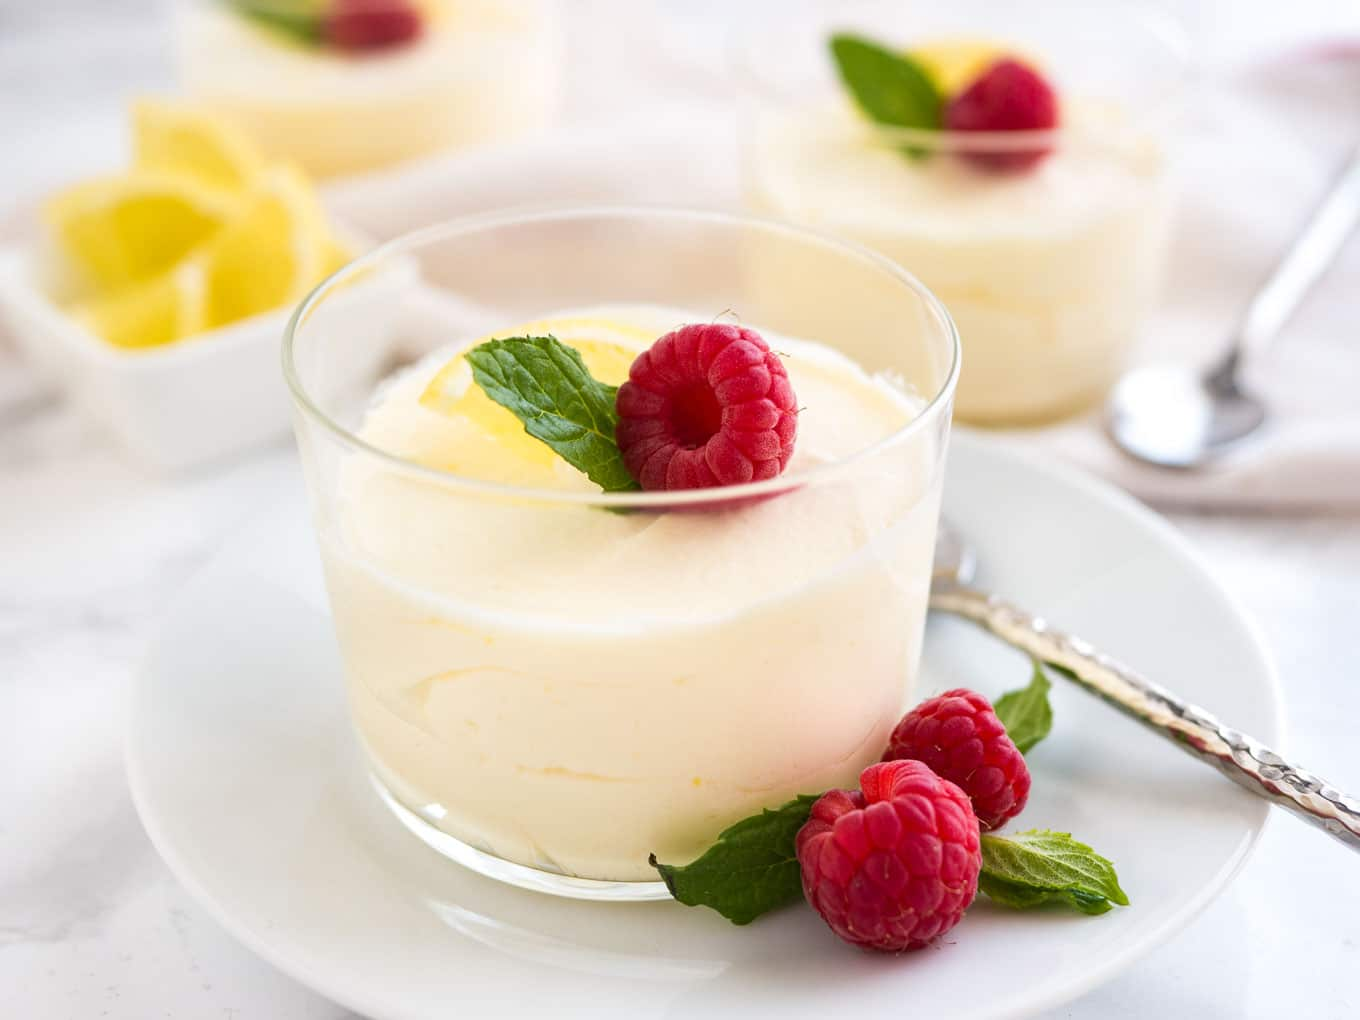 This easy 3-ingredient Lemon Curd Mousse is the perfect fancy yet easy-to-make dessert for your next summer party!